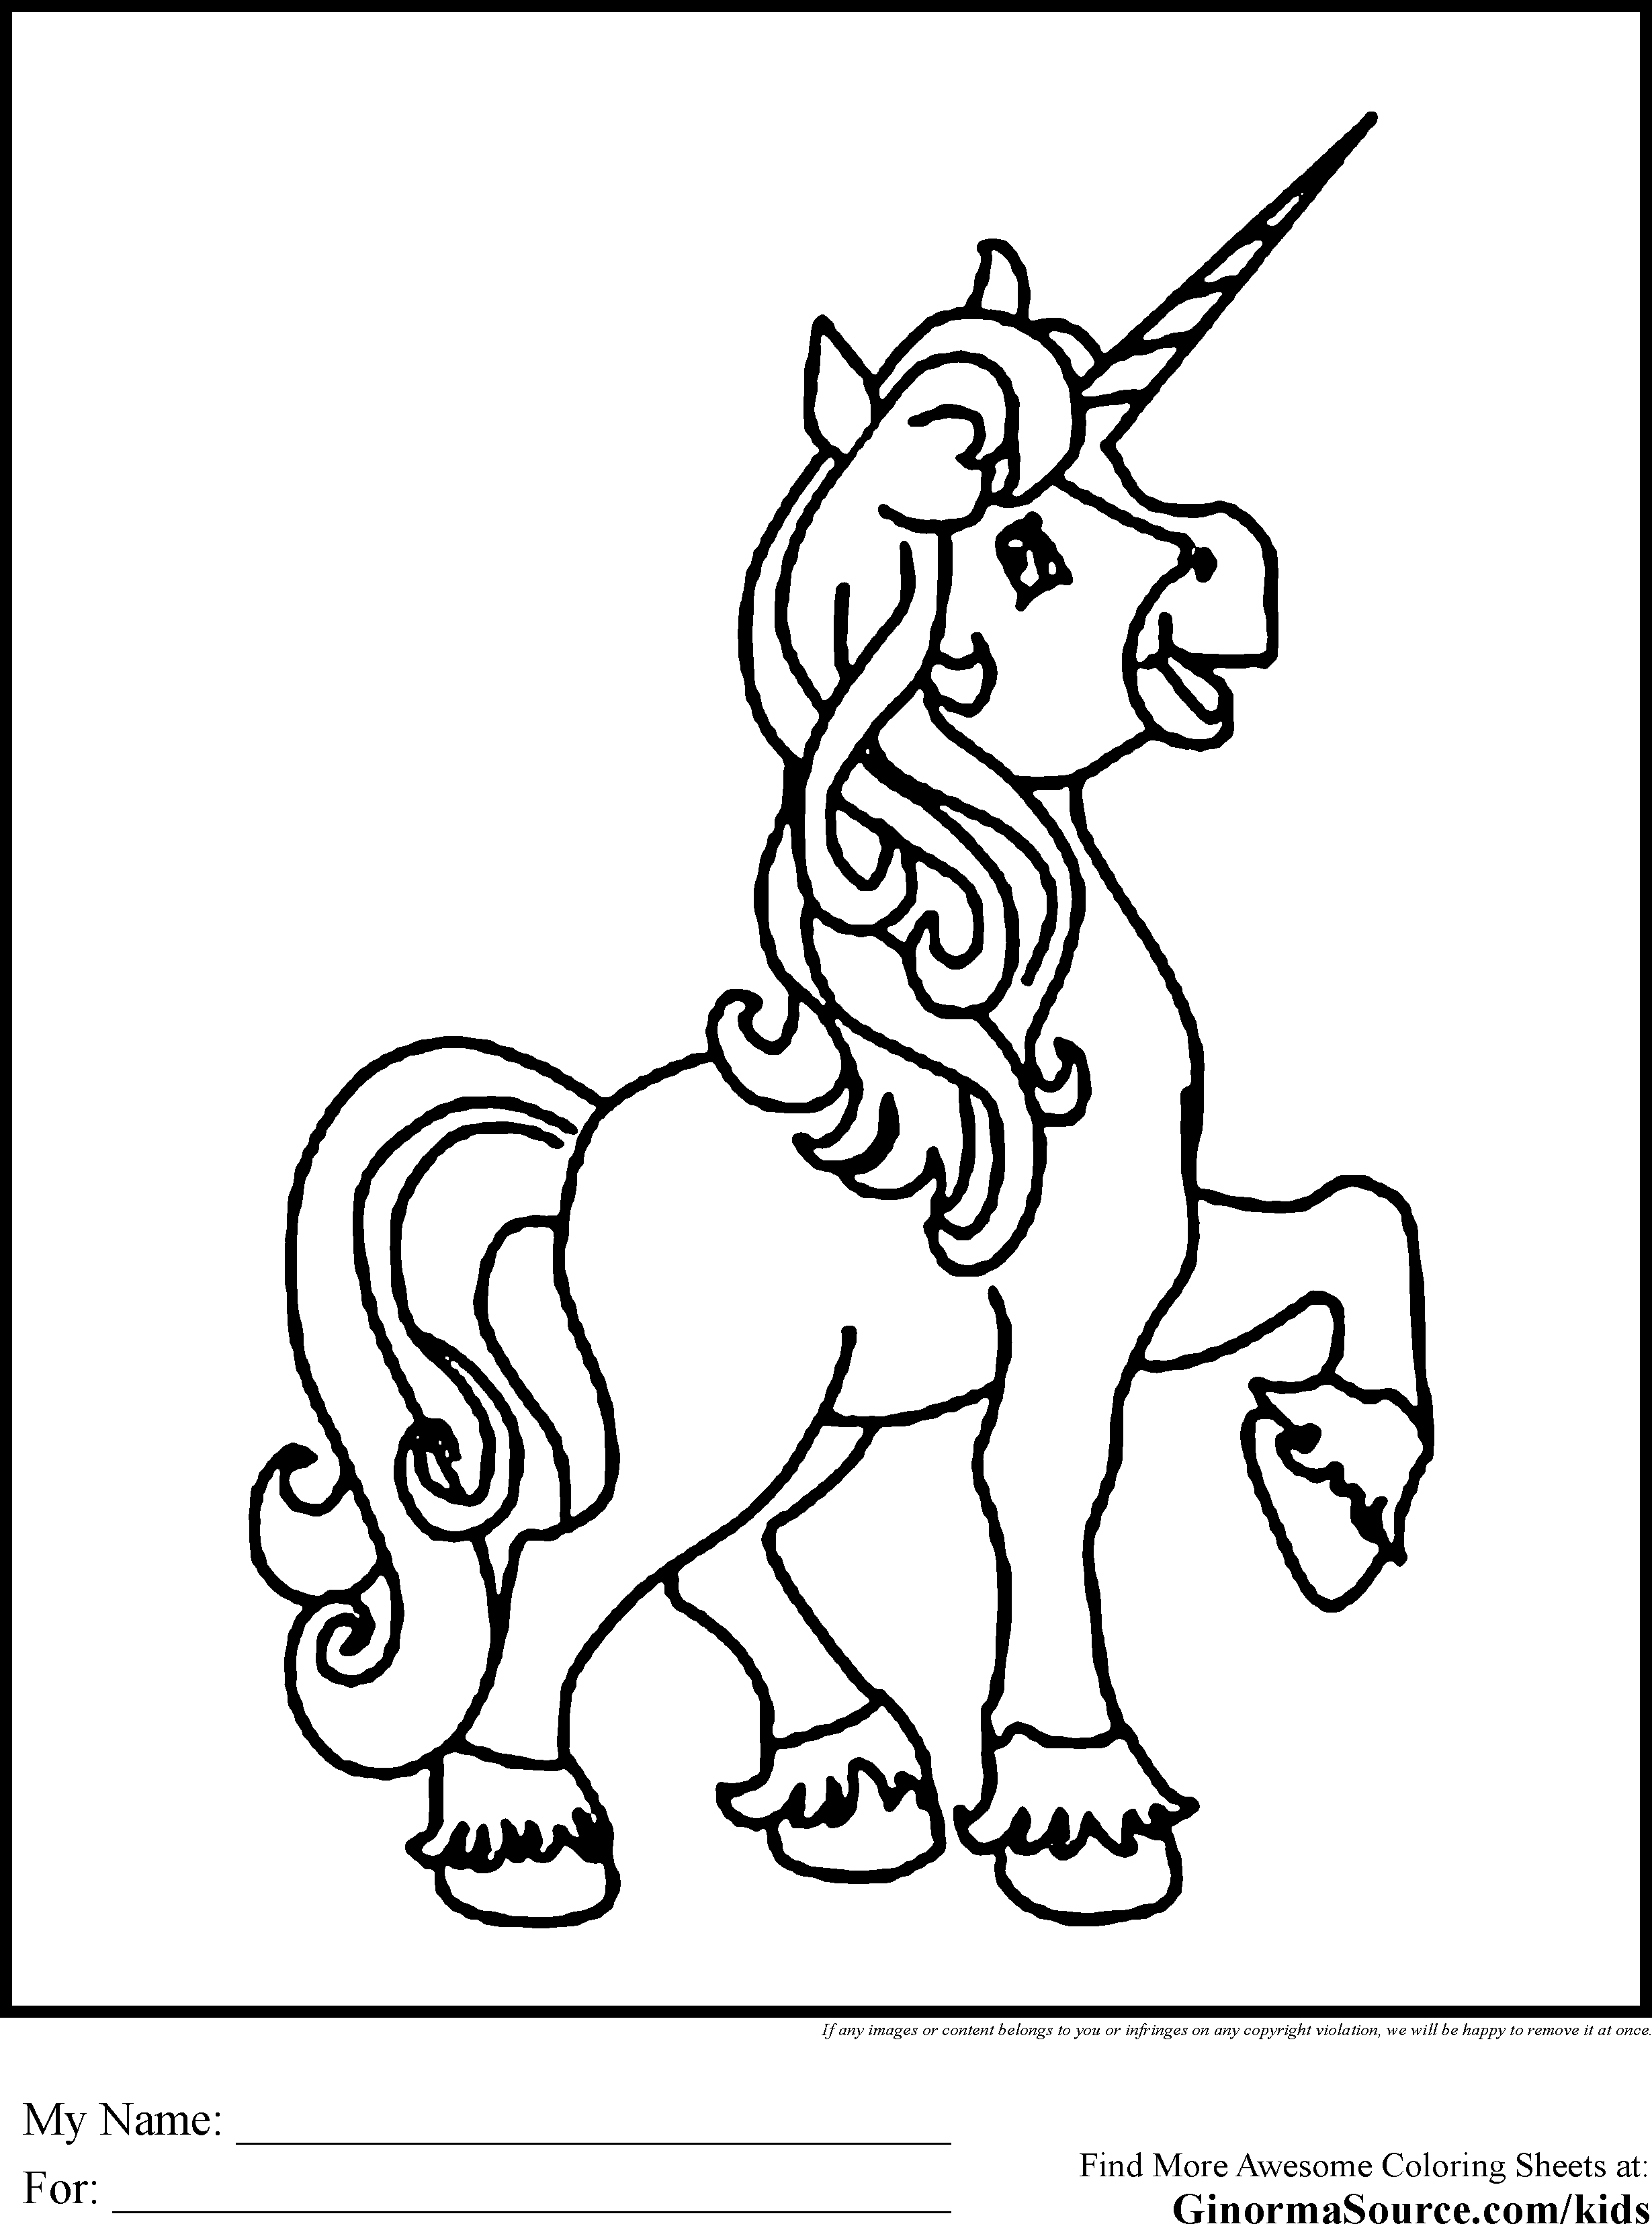 Unicorn Coloring Pages (With images) | Unicorn coloring ...